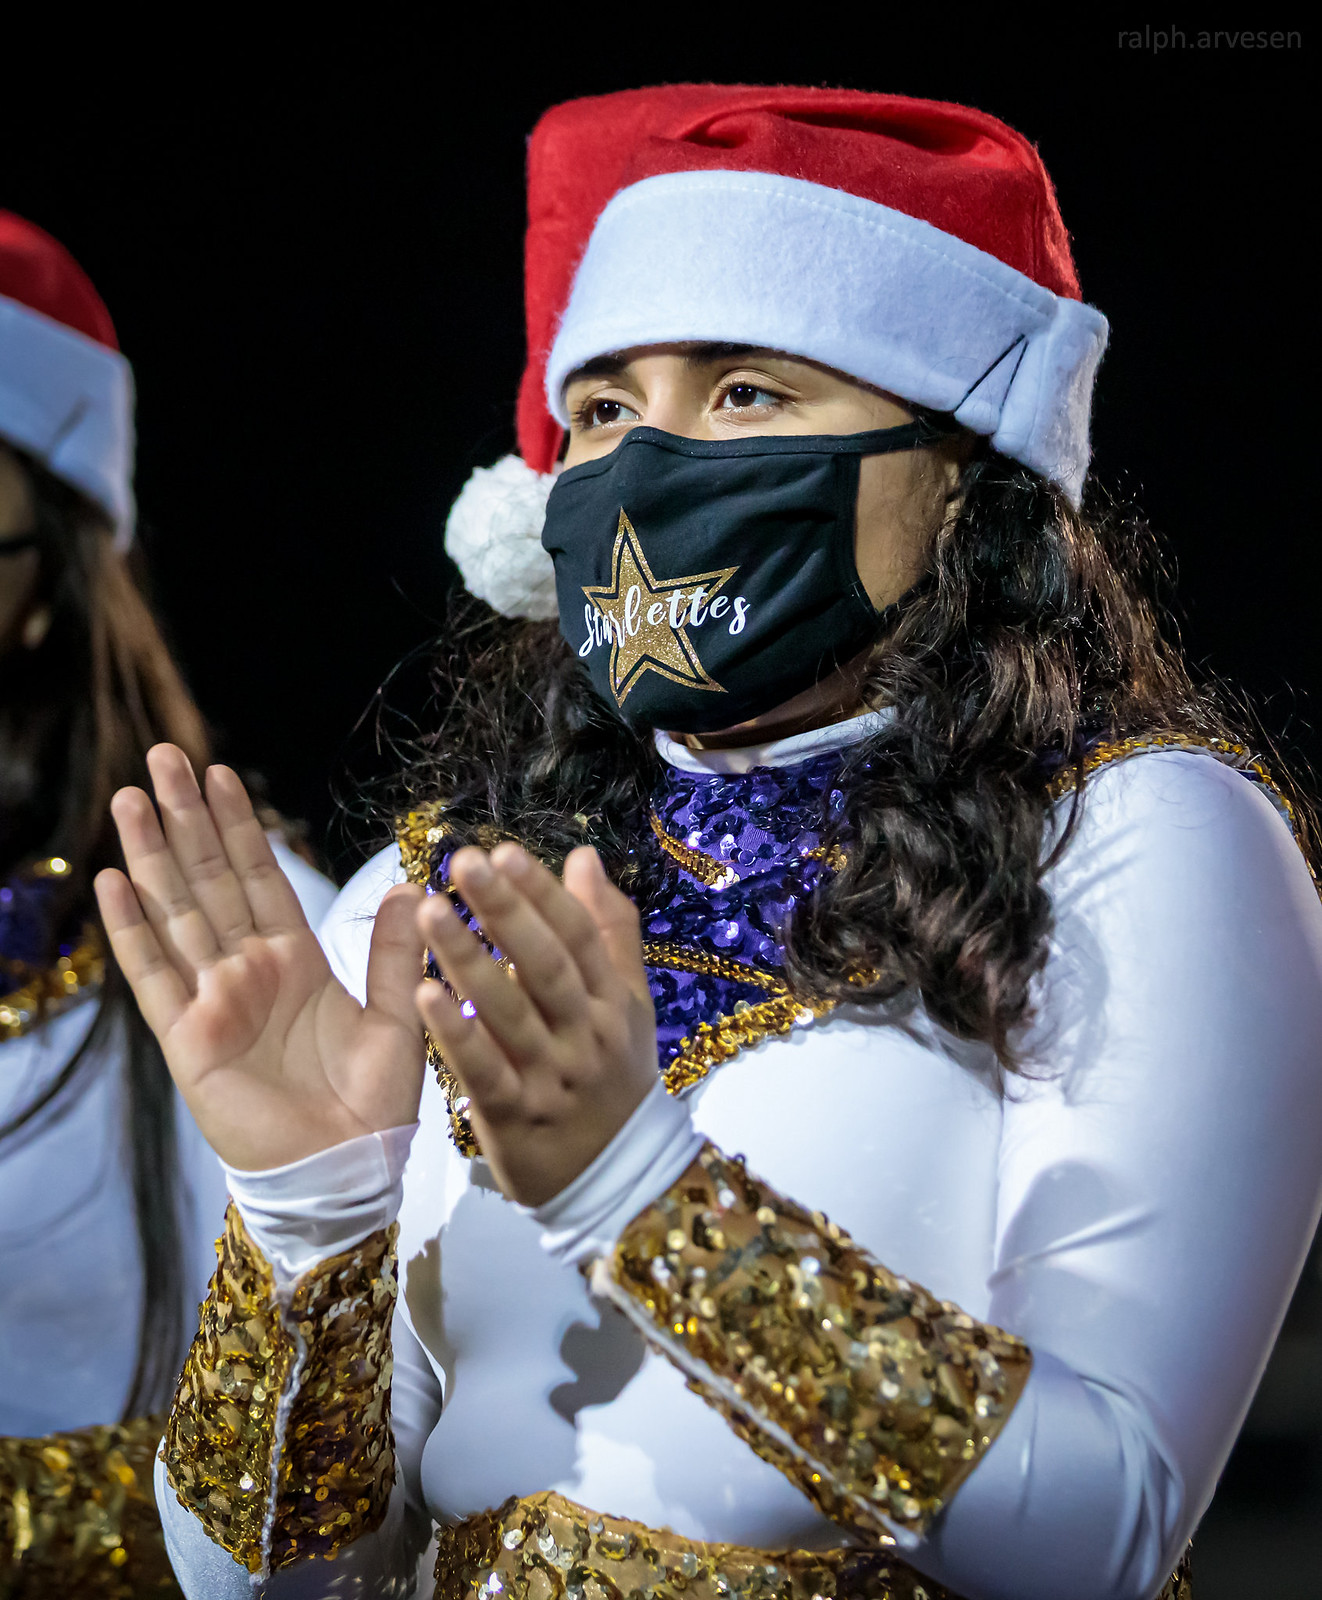 Marble Falls Marching Band and Starlettes | Texas Review | Ralph Arvesen